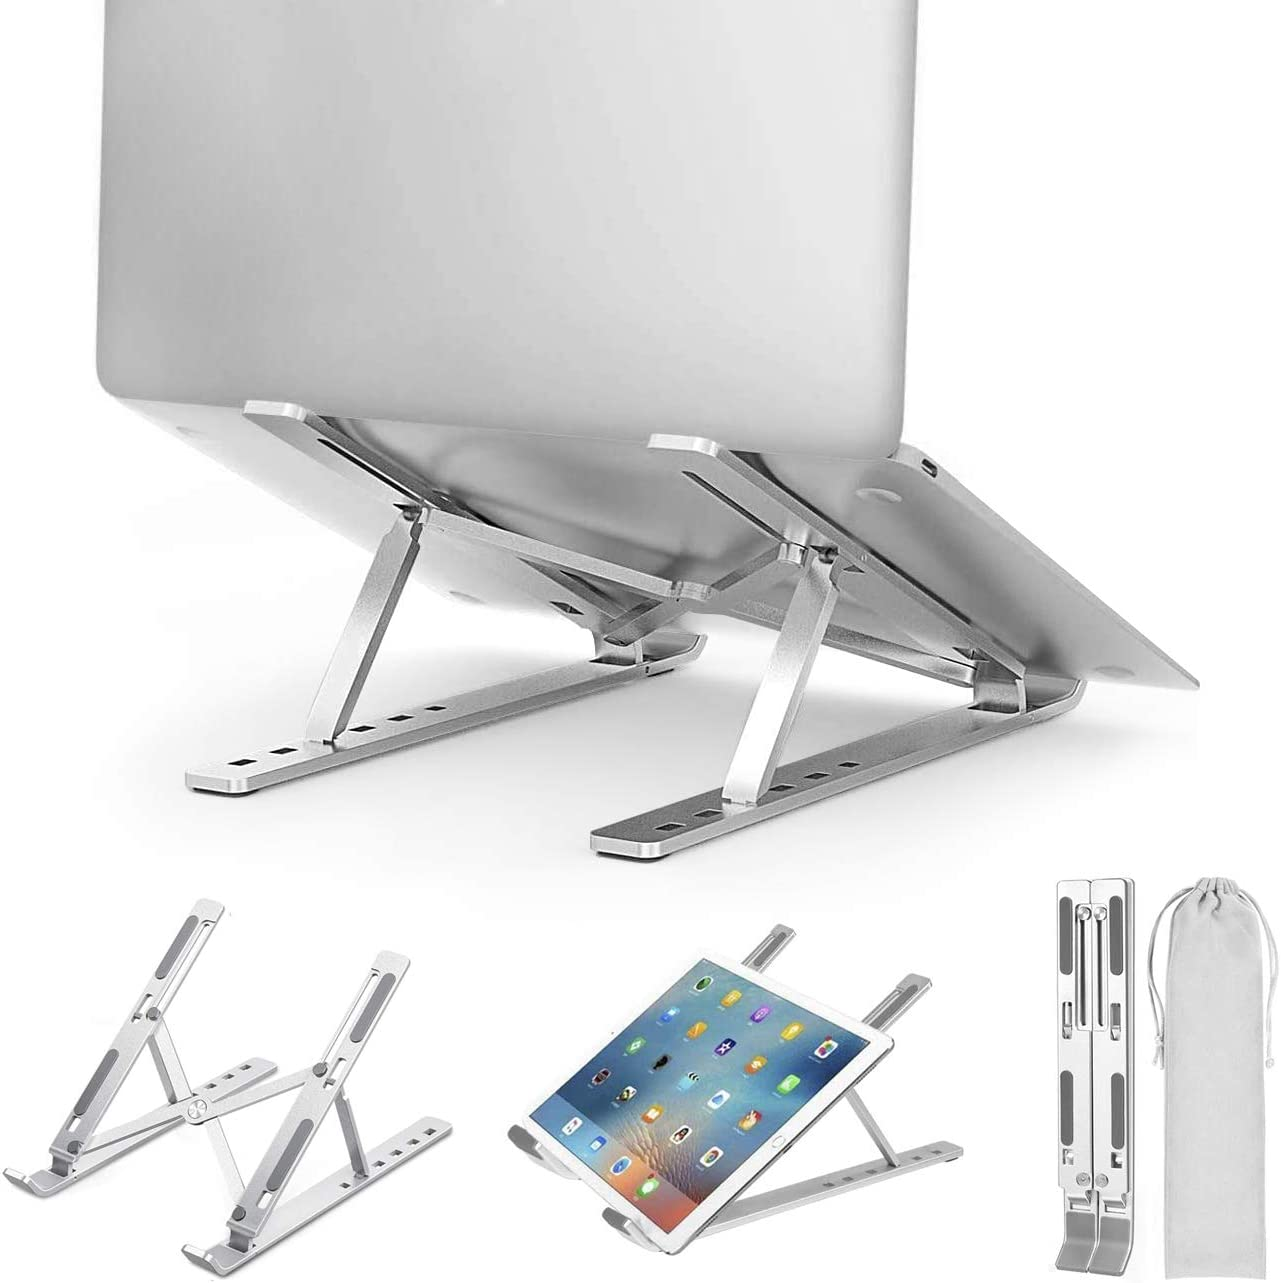 Laptop Stand, Adjustable Aluminum Alloy Laptop Holder, Ergonomic Foldable Portable Desk Laptop Stands with Non-Slip Mat, Compatible with 10-15.6 Inch MacBook, Laptops, Notebook